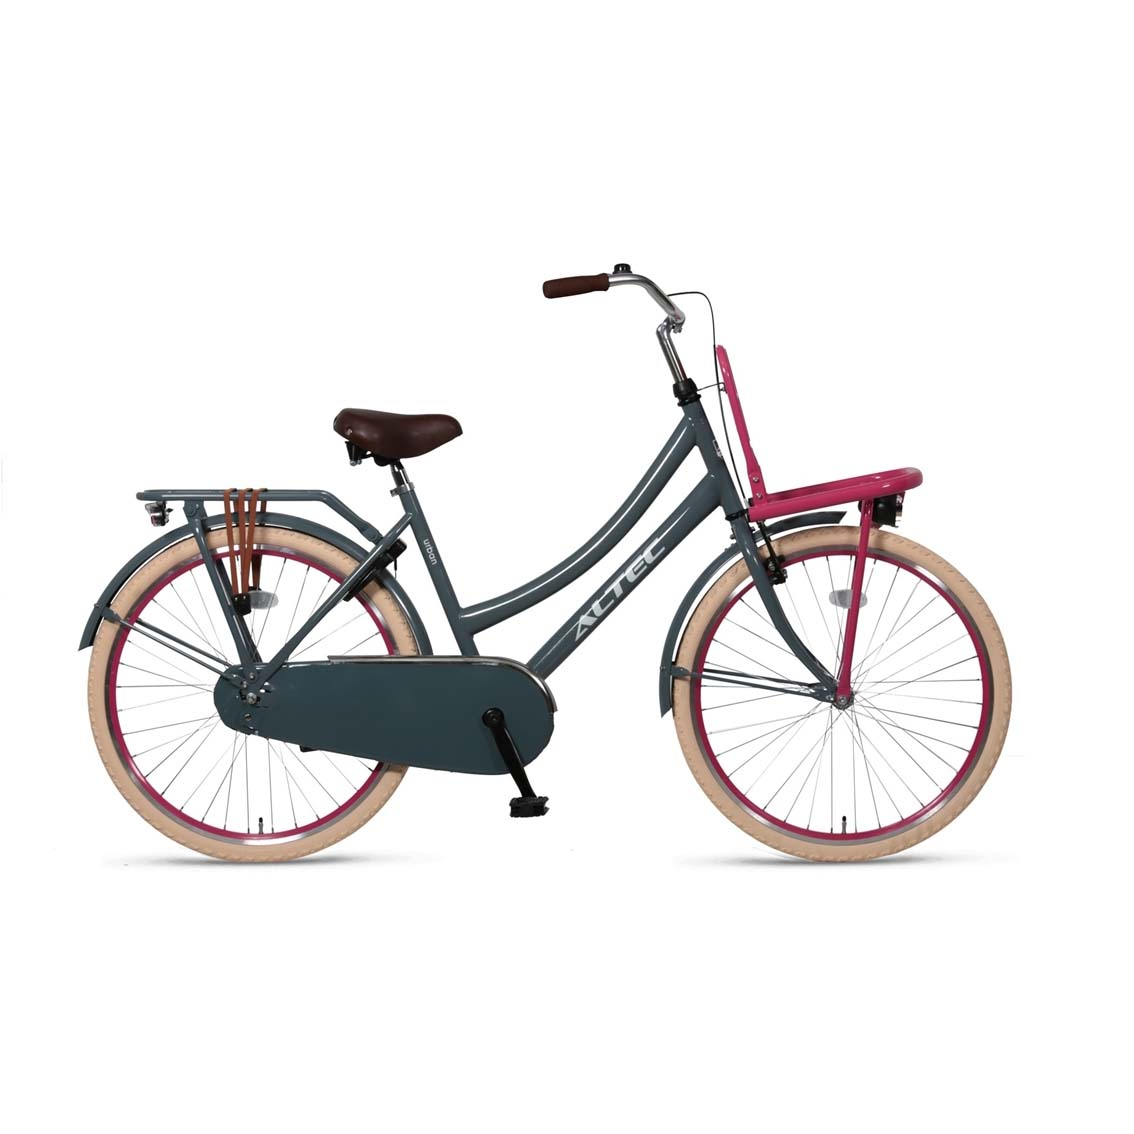 Altec-Urban-26inch-Transportfiets-GrayPink-2019 copy